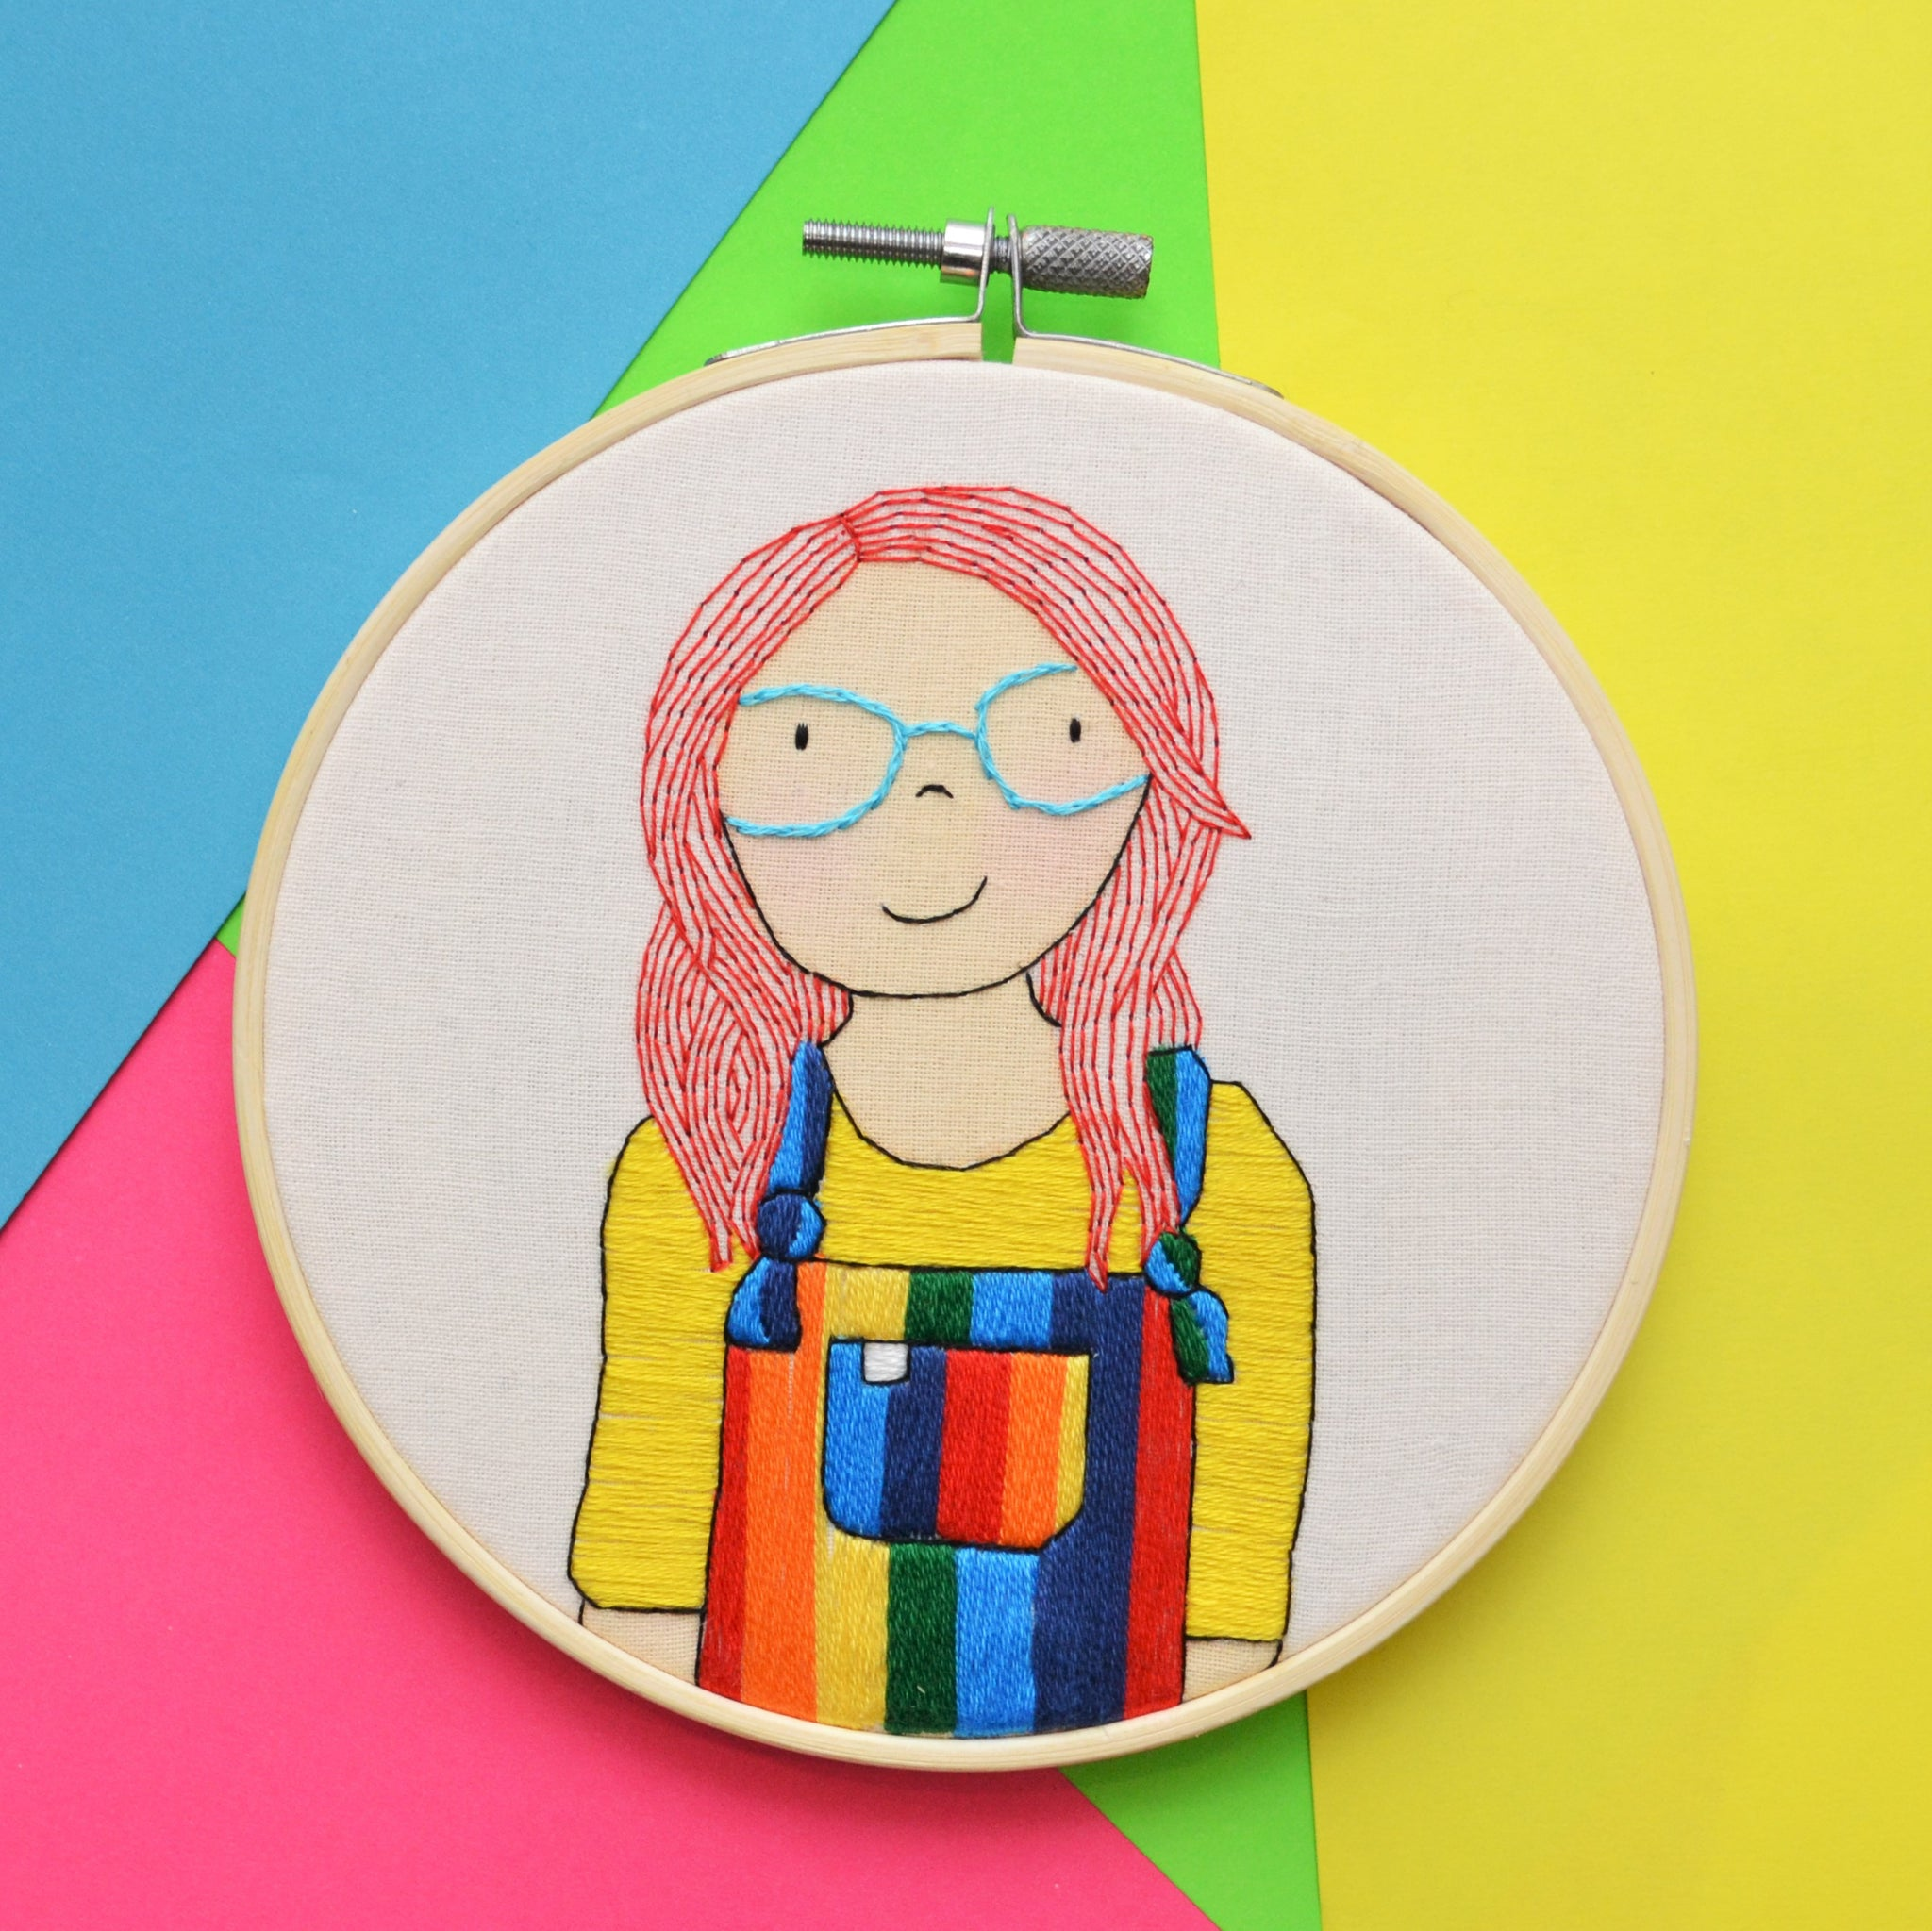 A mixed media hand embroidery illustration of a female with bright red hair and blue glasses. She is wearing rainbow dungarees and a bright yellow top. The hoop is sitting on a multicoloured background.